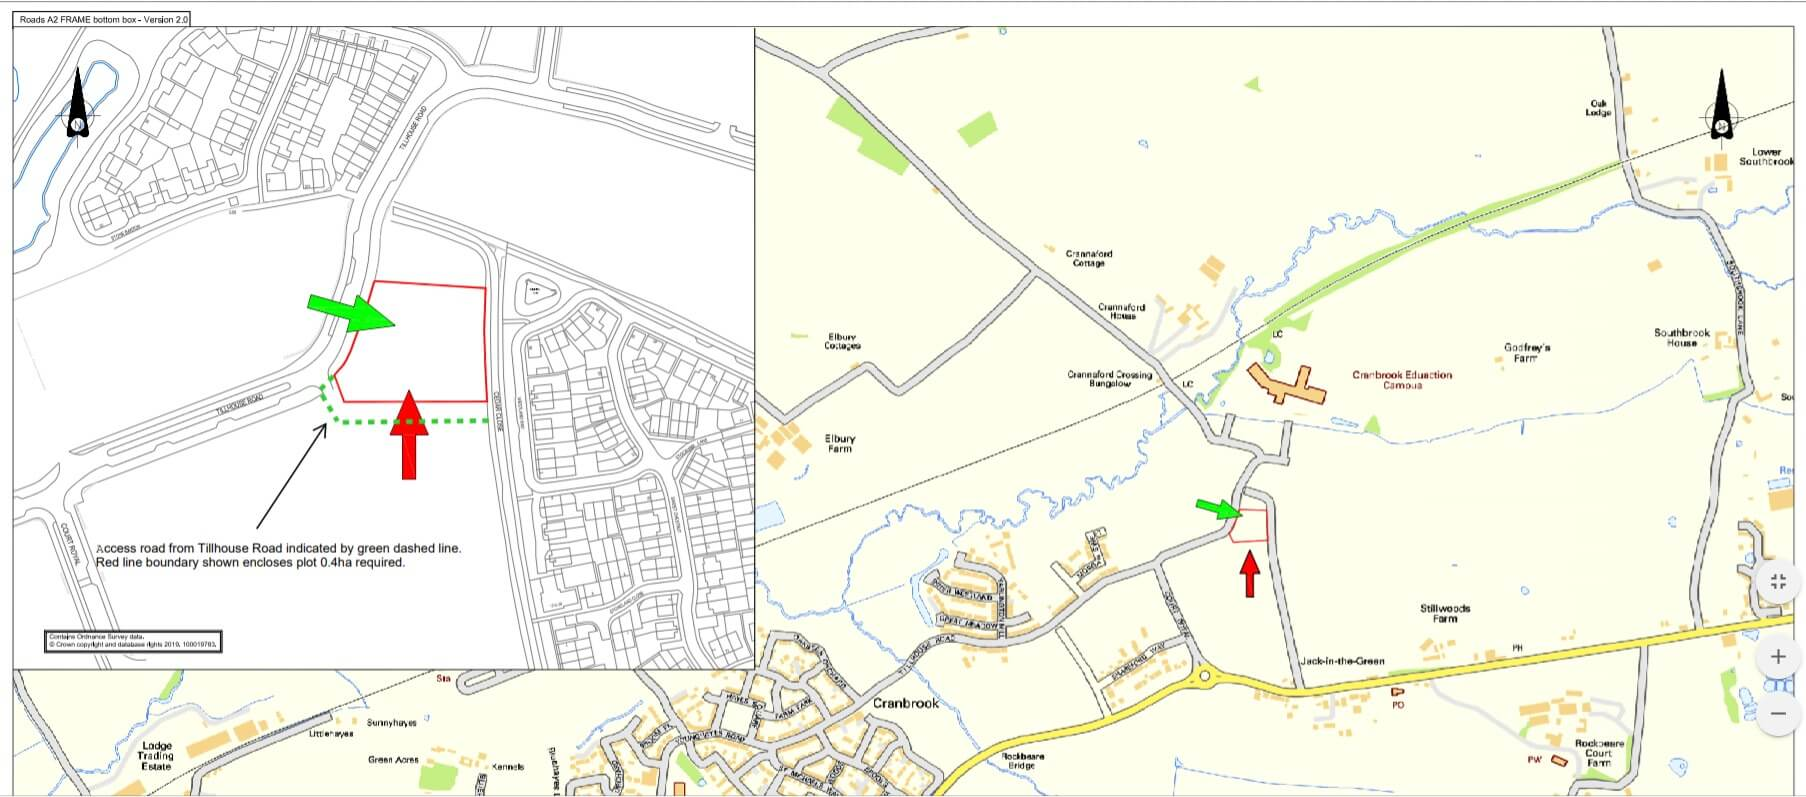 In red, where the new community building in Cranbrook would go. Image: DCC